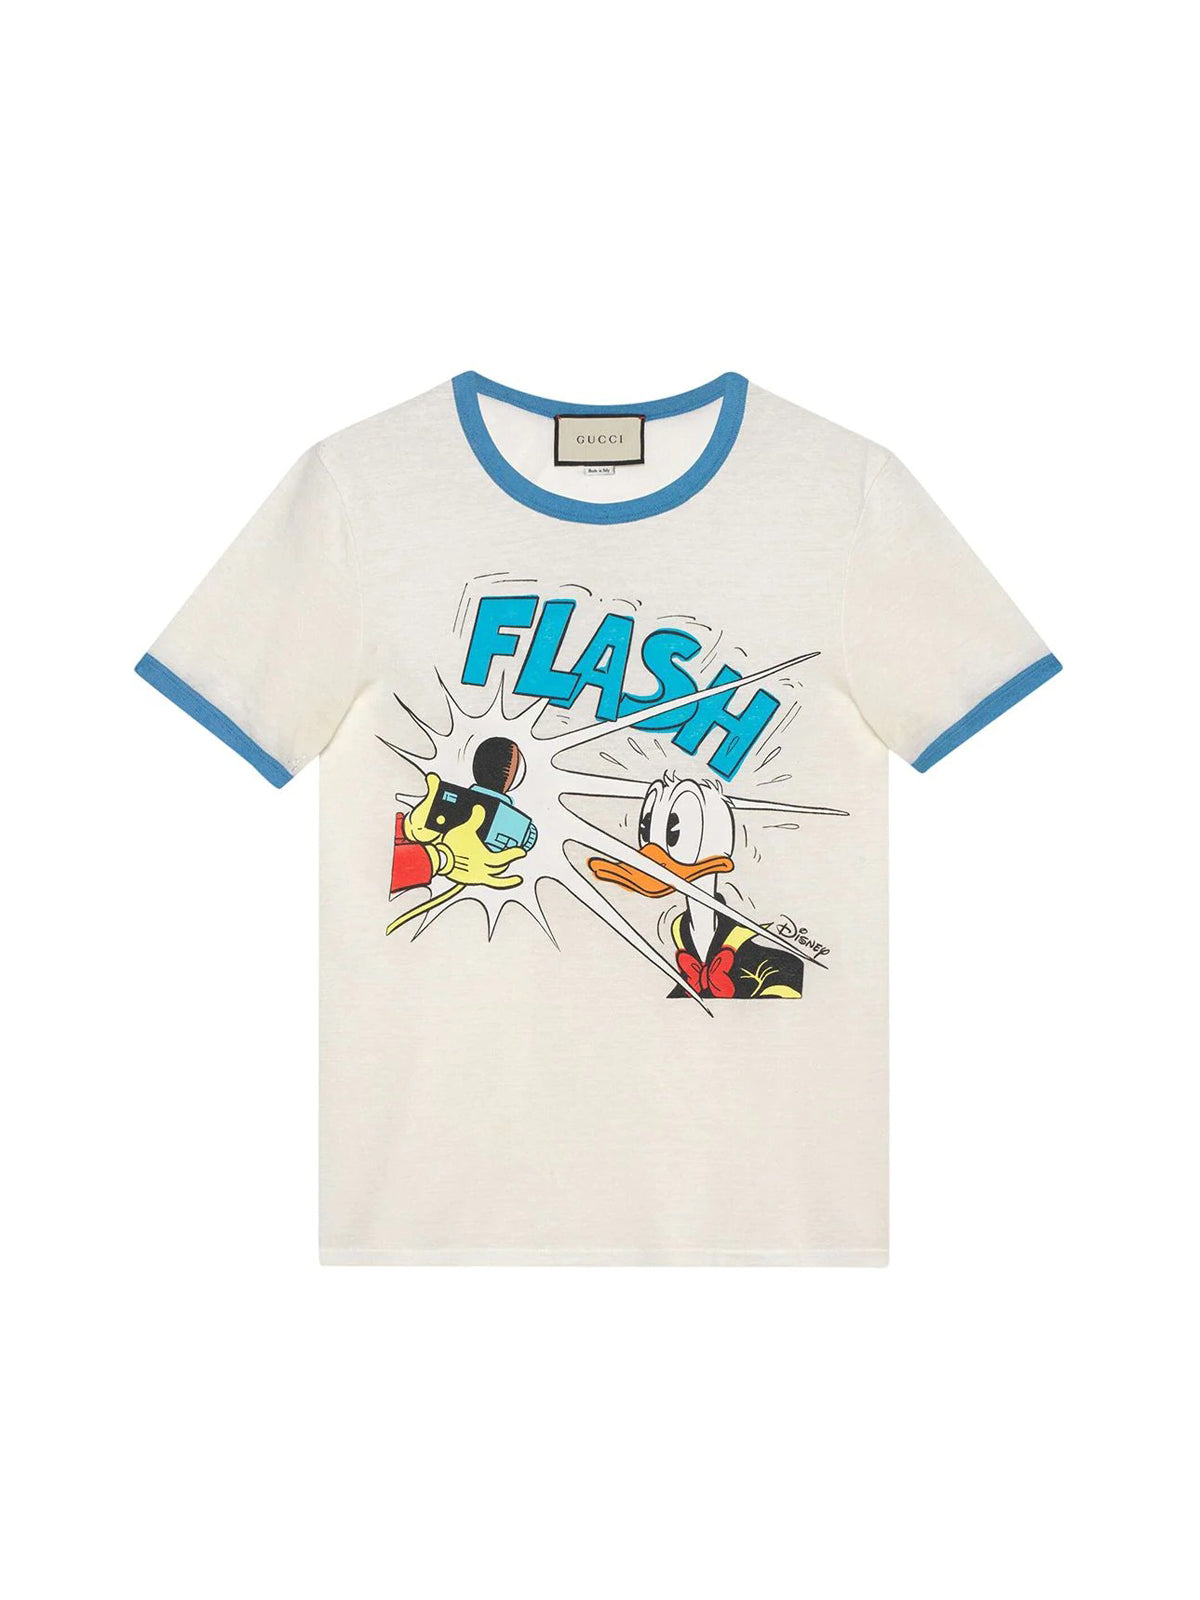 T-shirt Donald Duck Gucci X Disney